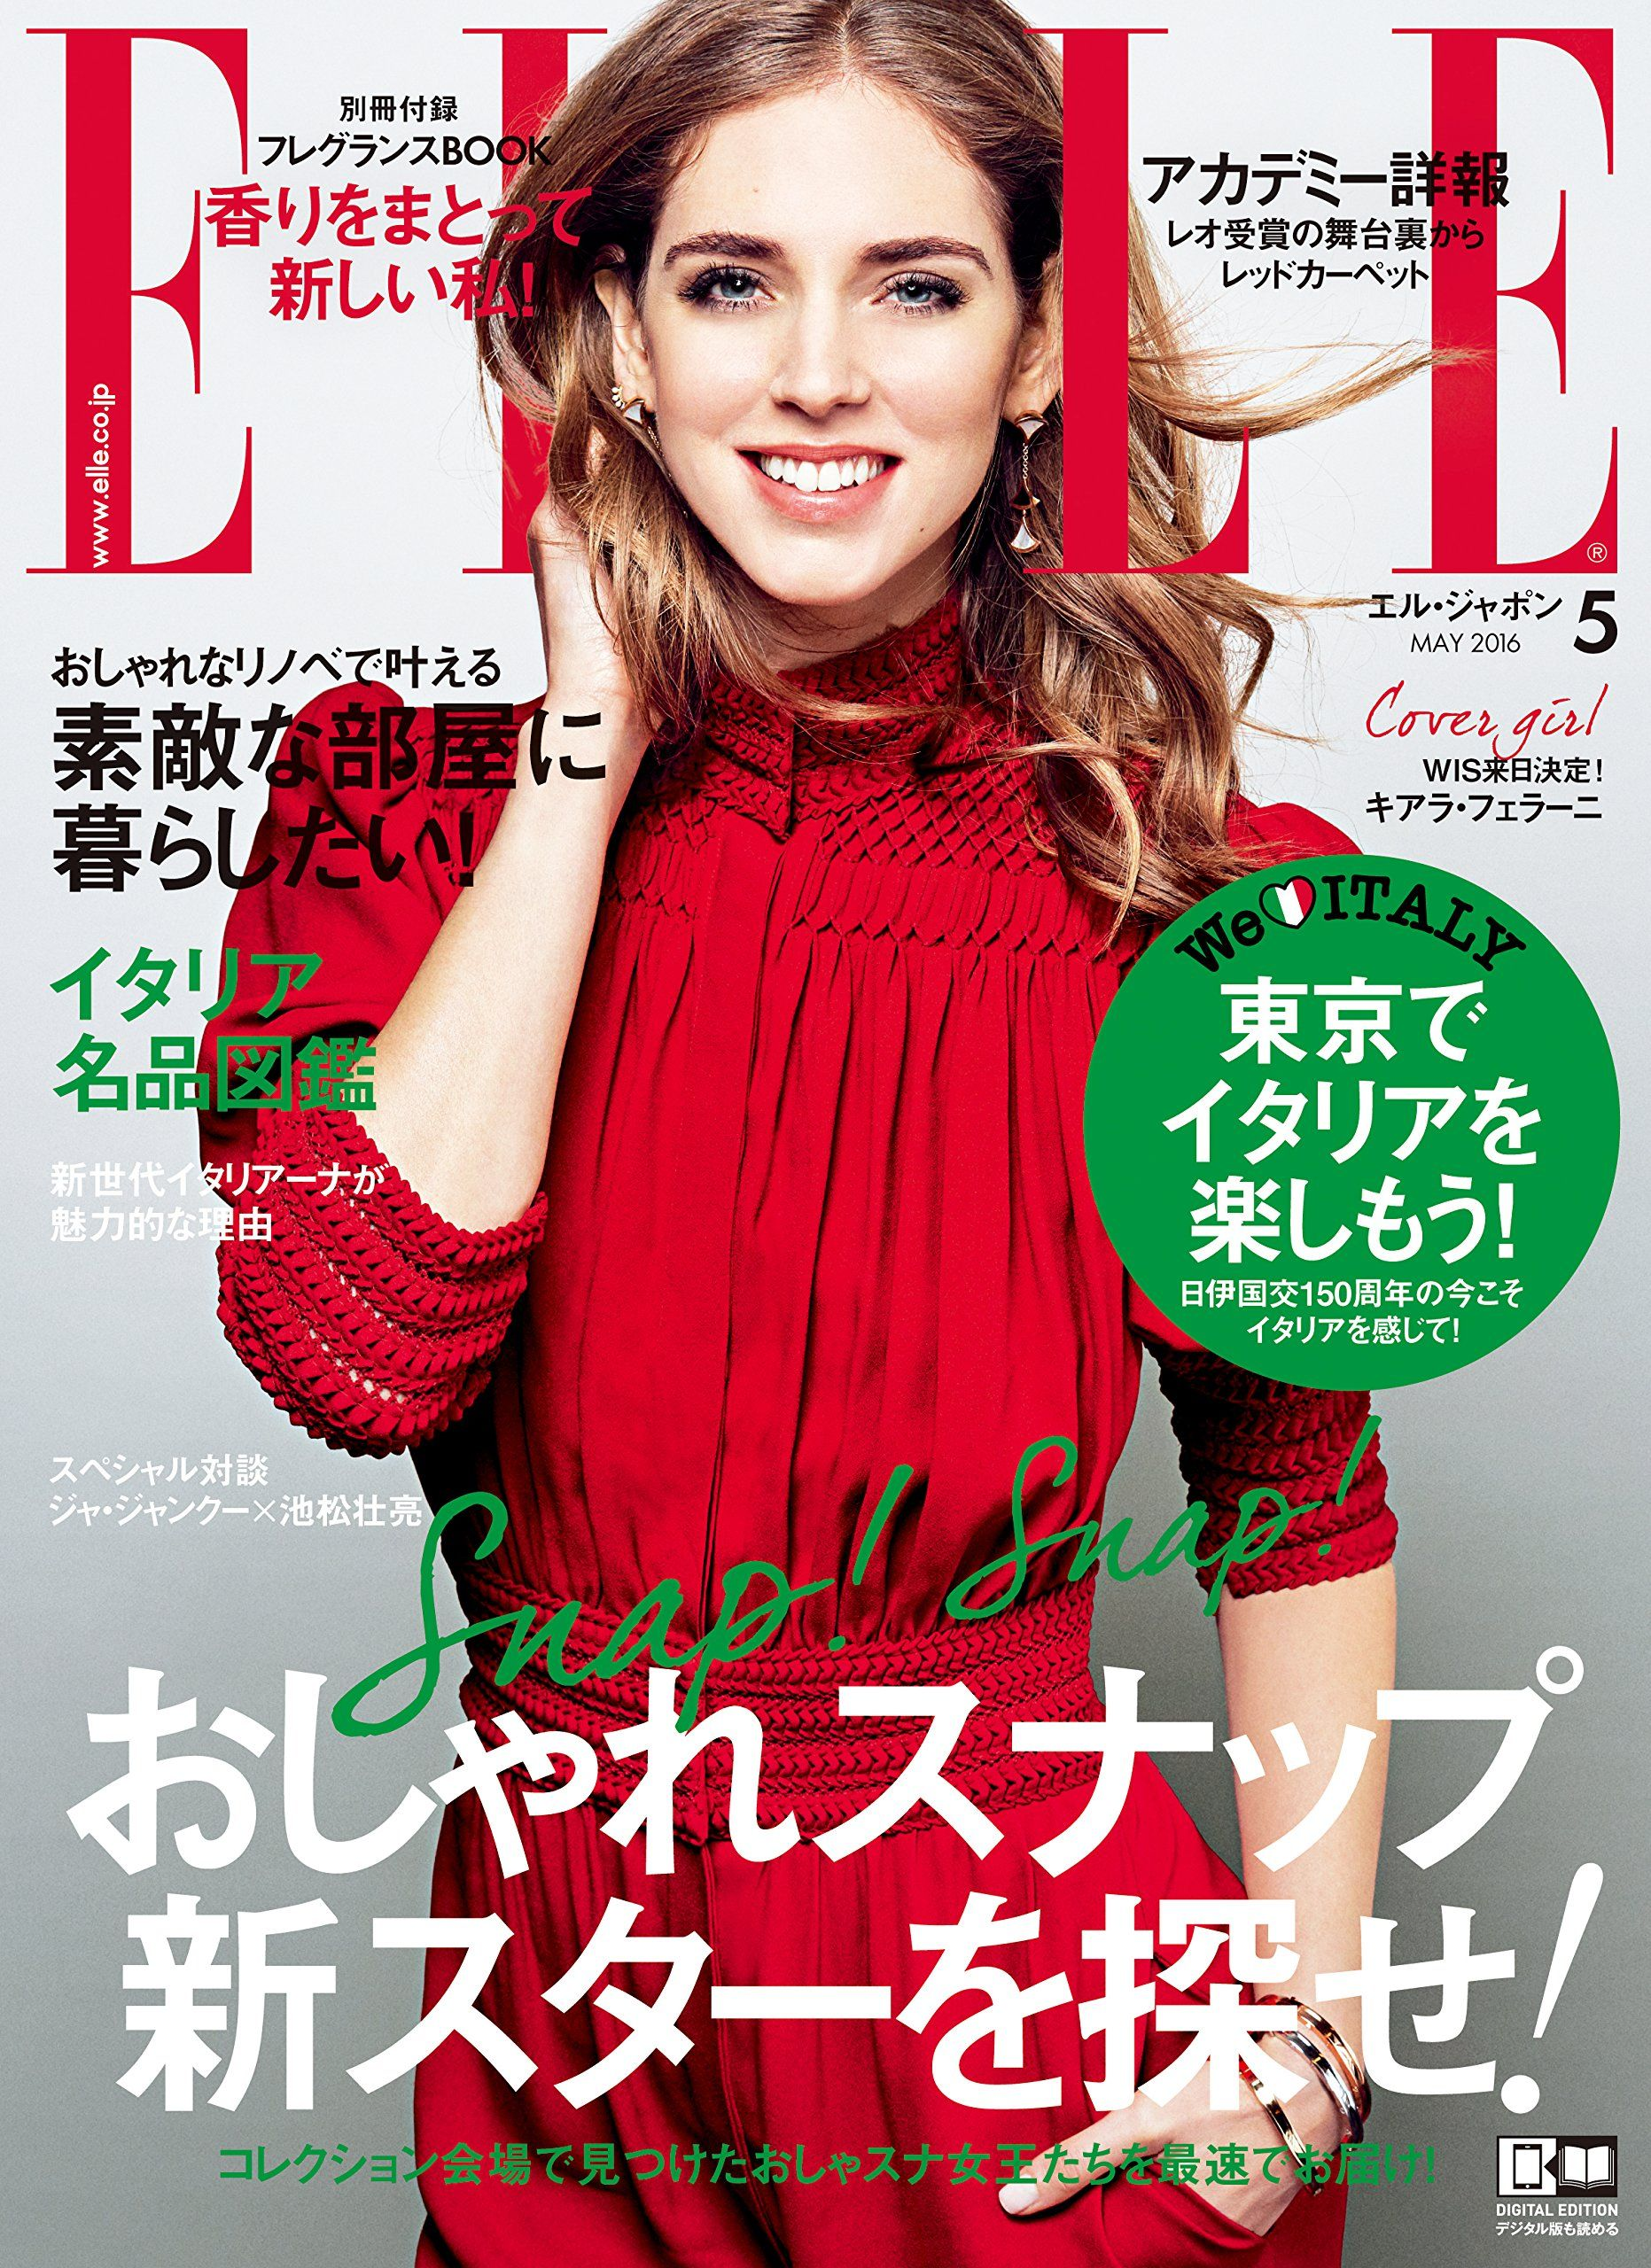 Elle Japan Cover May 2015 | Danilo Scarpati | Il Gufo | GQ Italia | Andrea Tenerani | Numerique Retouch Photo Retouching Studio